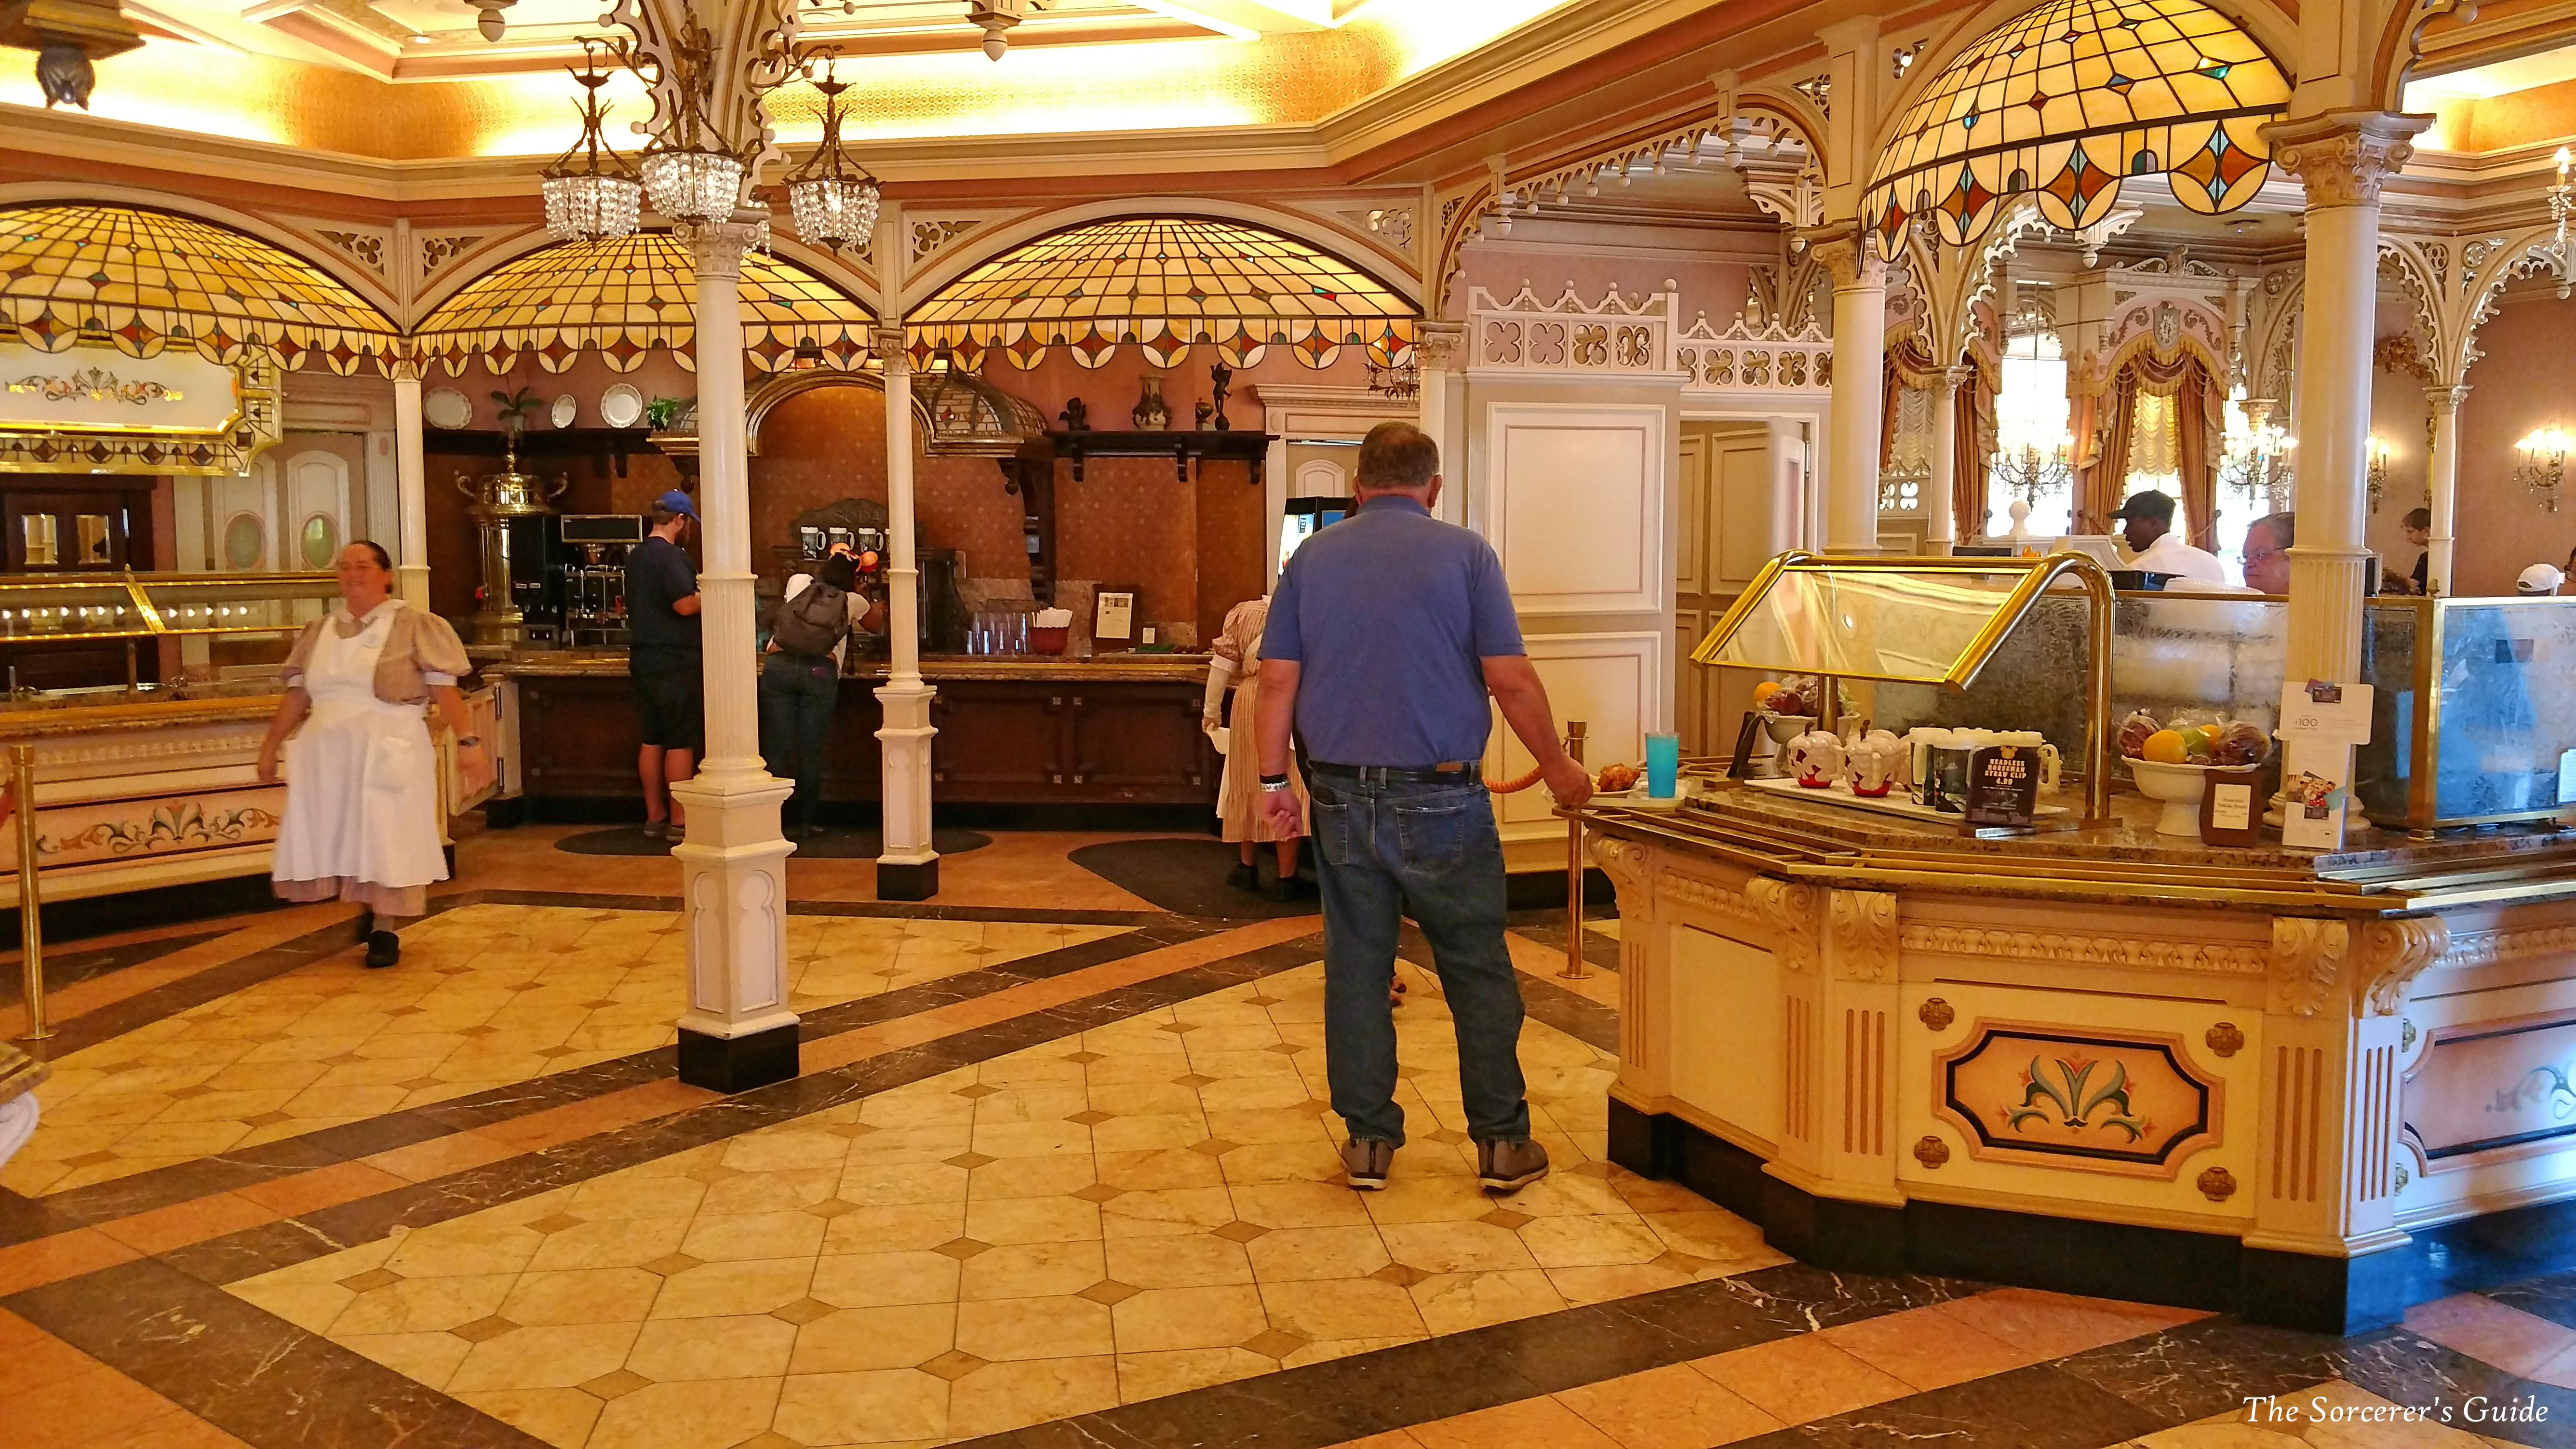 Inside of Plaza Inn